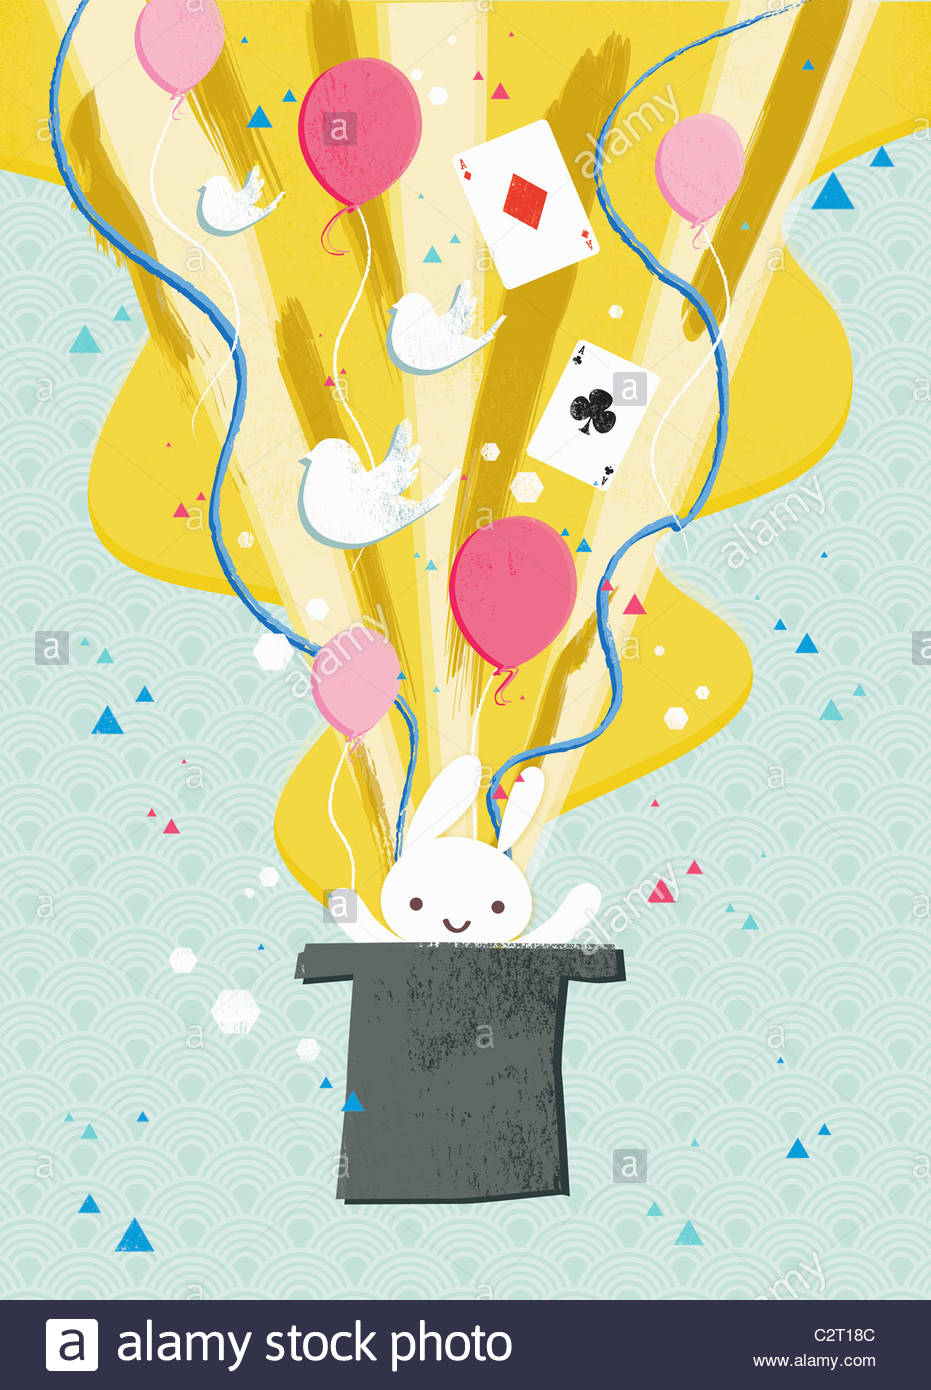 Rabbit, balloons and cards coming from top hat - Stock Image